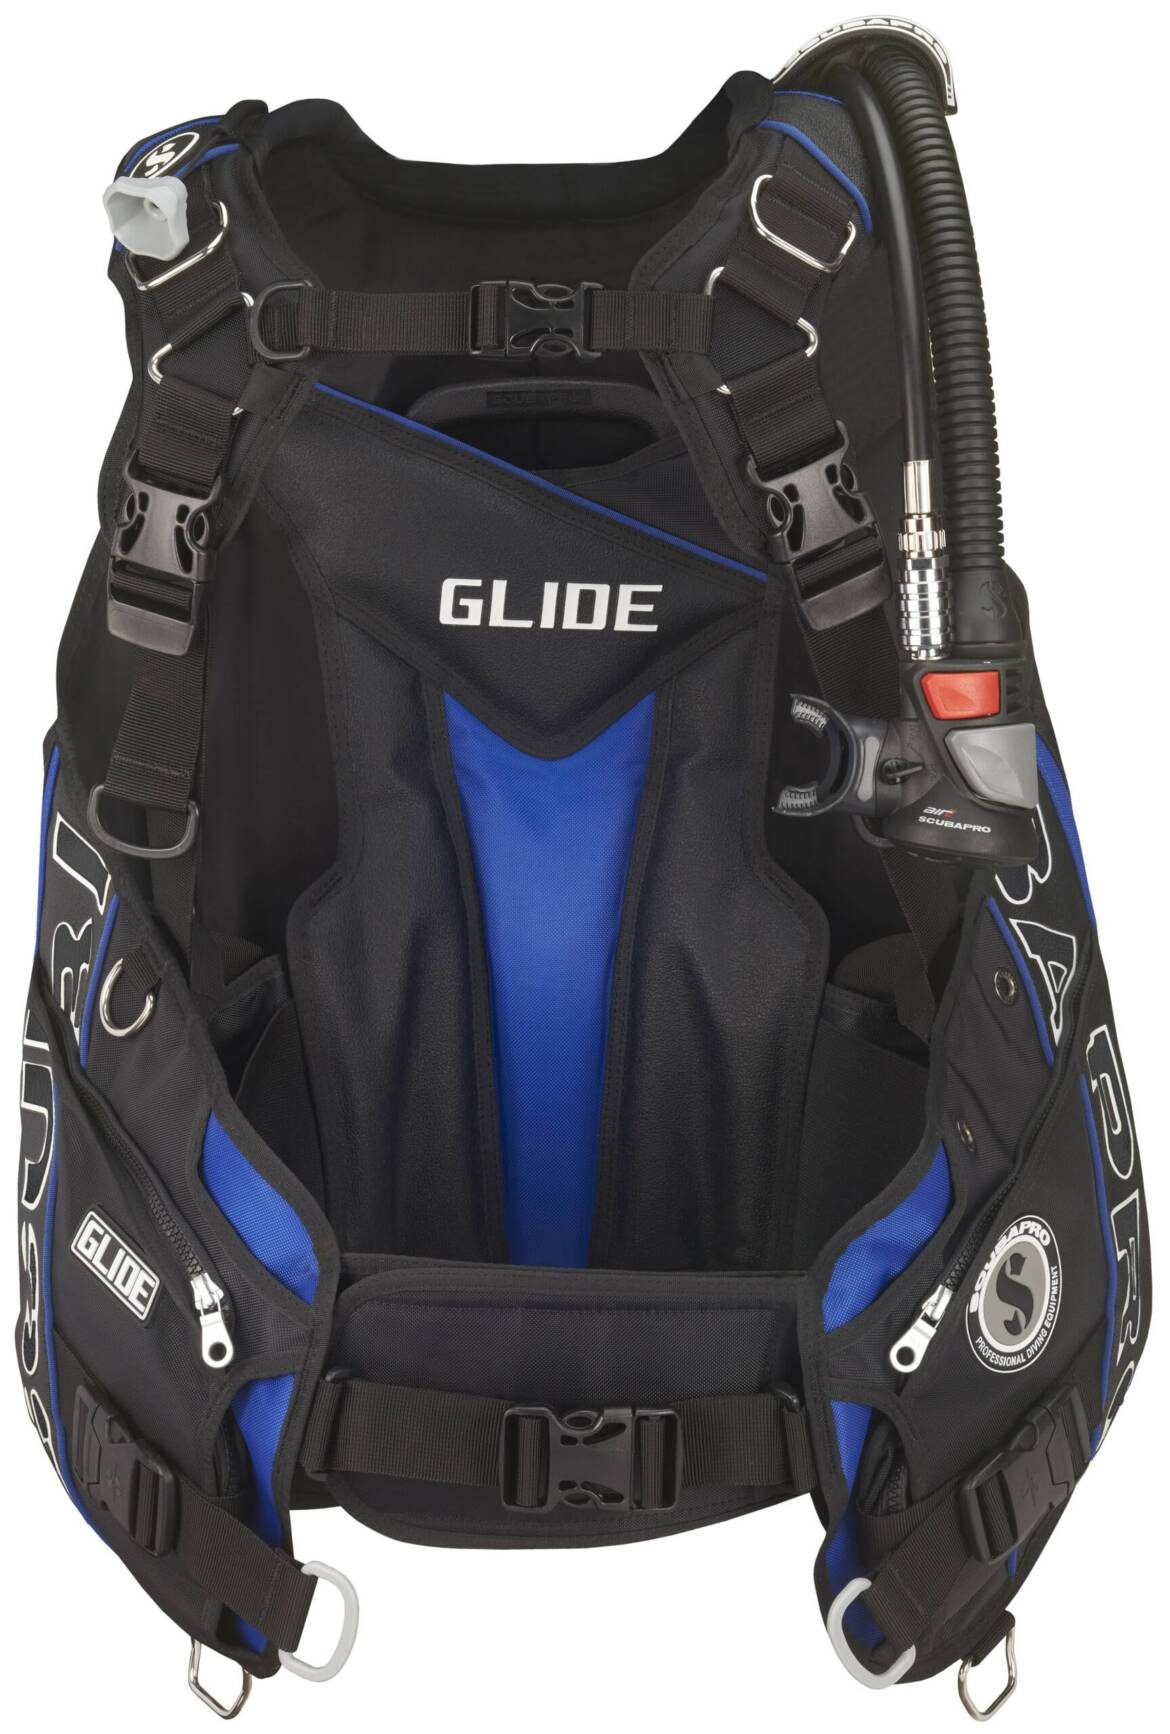 Glide-blue_Air2_front-scaled.jpg